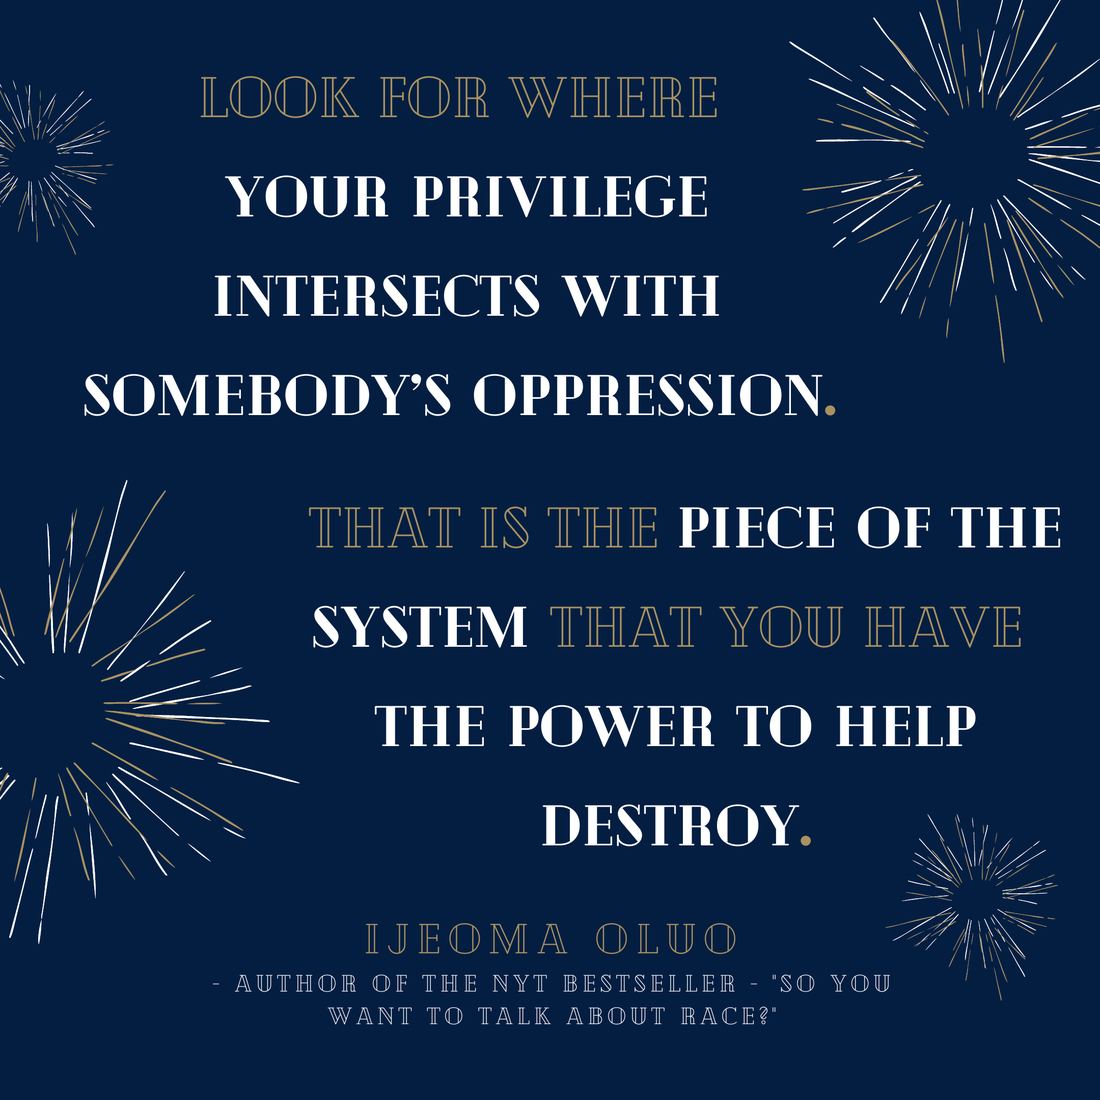 """Blue background with gold and white text. Gold and white explosions on background. """"Look for where your privilege intersects with somebody's oppression. That is the piece of the system that you have the power to help destroy.""""   - Ijeoma Oluo, Author of the NYT Bestseller So you want to talk about race?"""